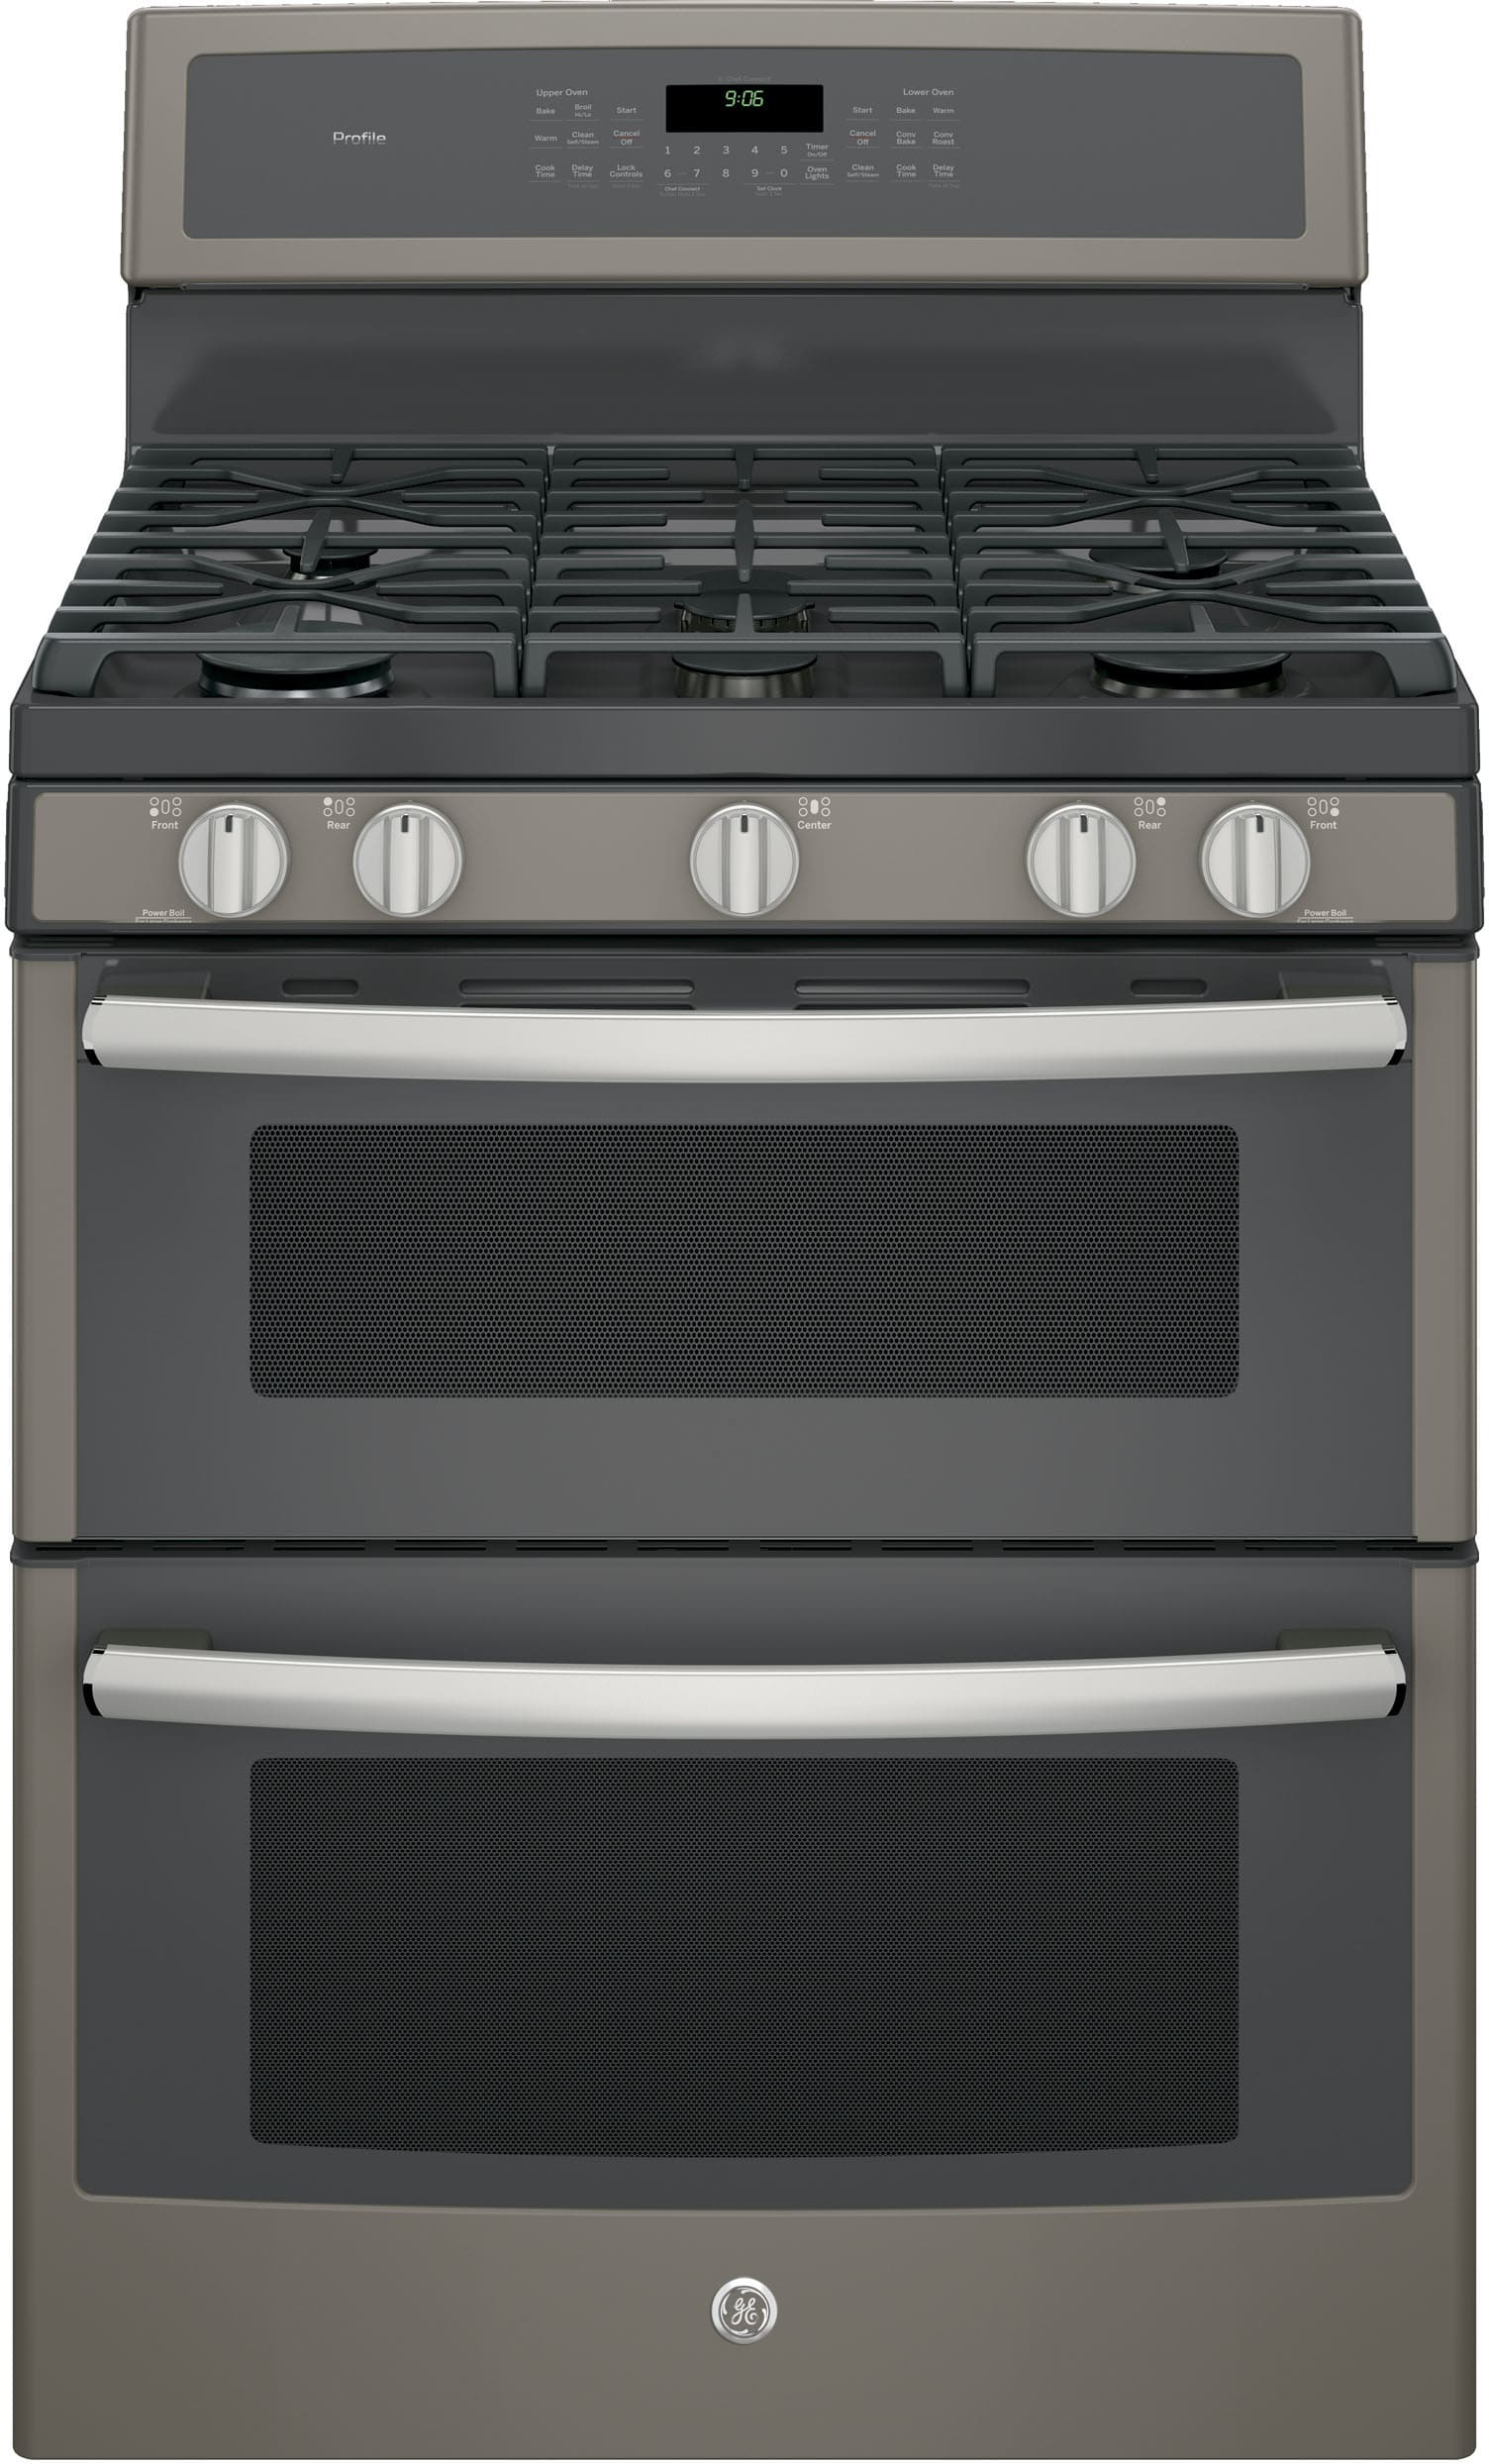 Ge Pgb960eejes 30 Inch Freestanding Double Oven Gas Range With Convection Chef